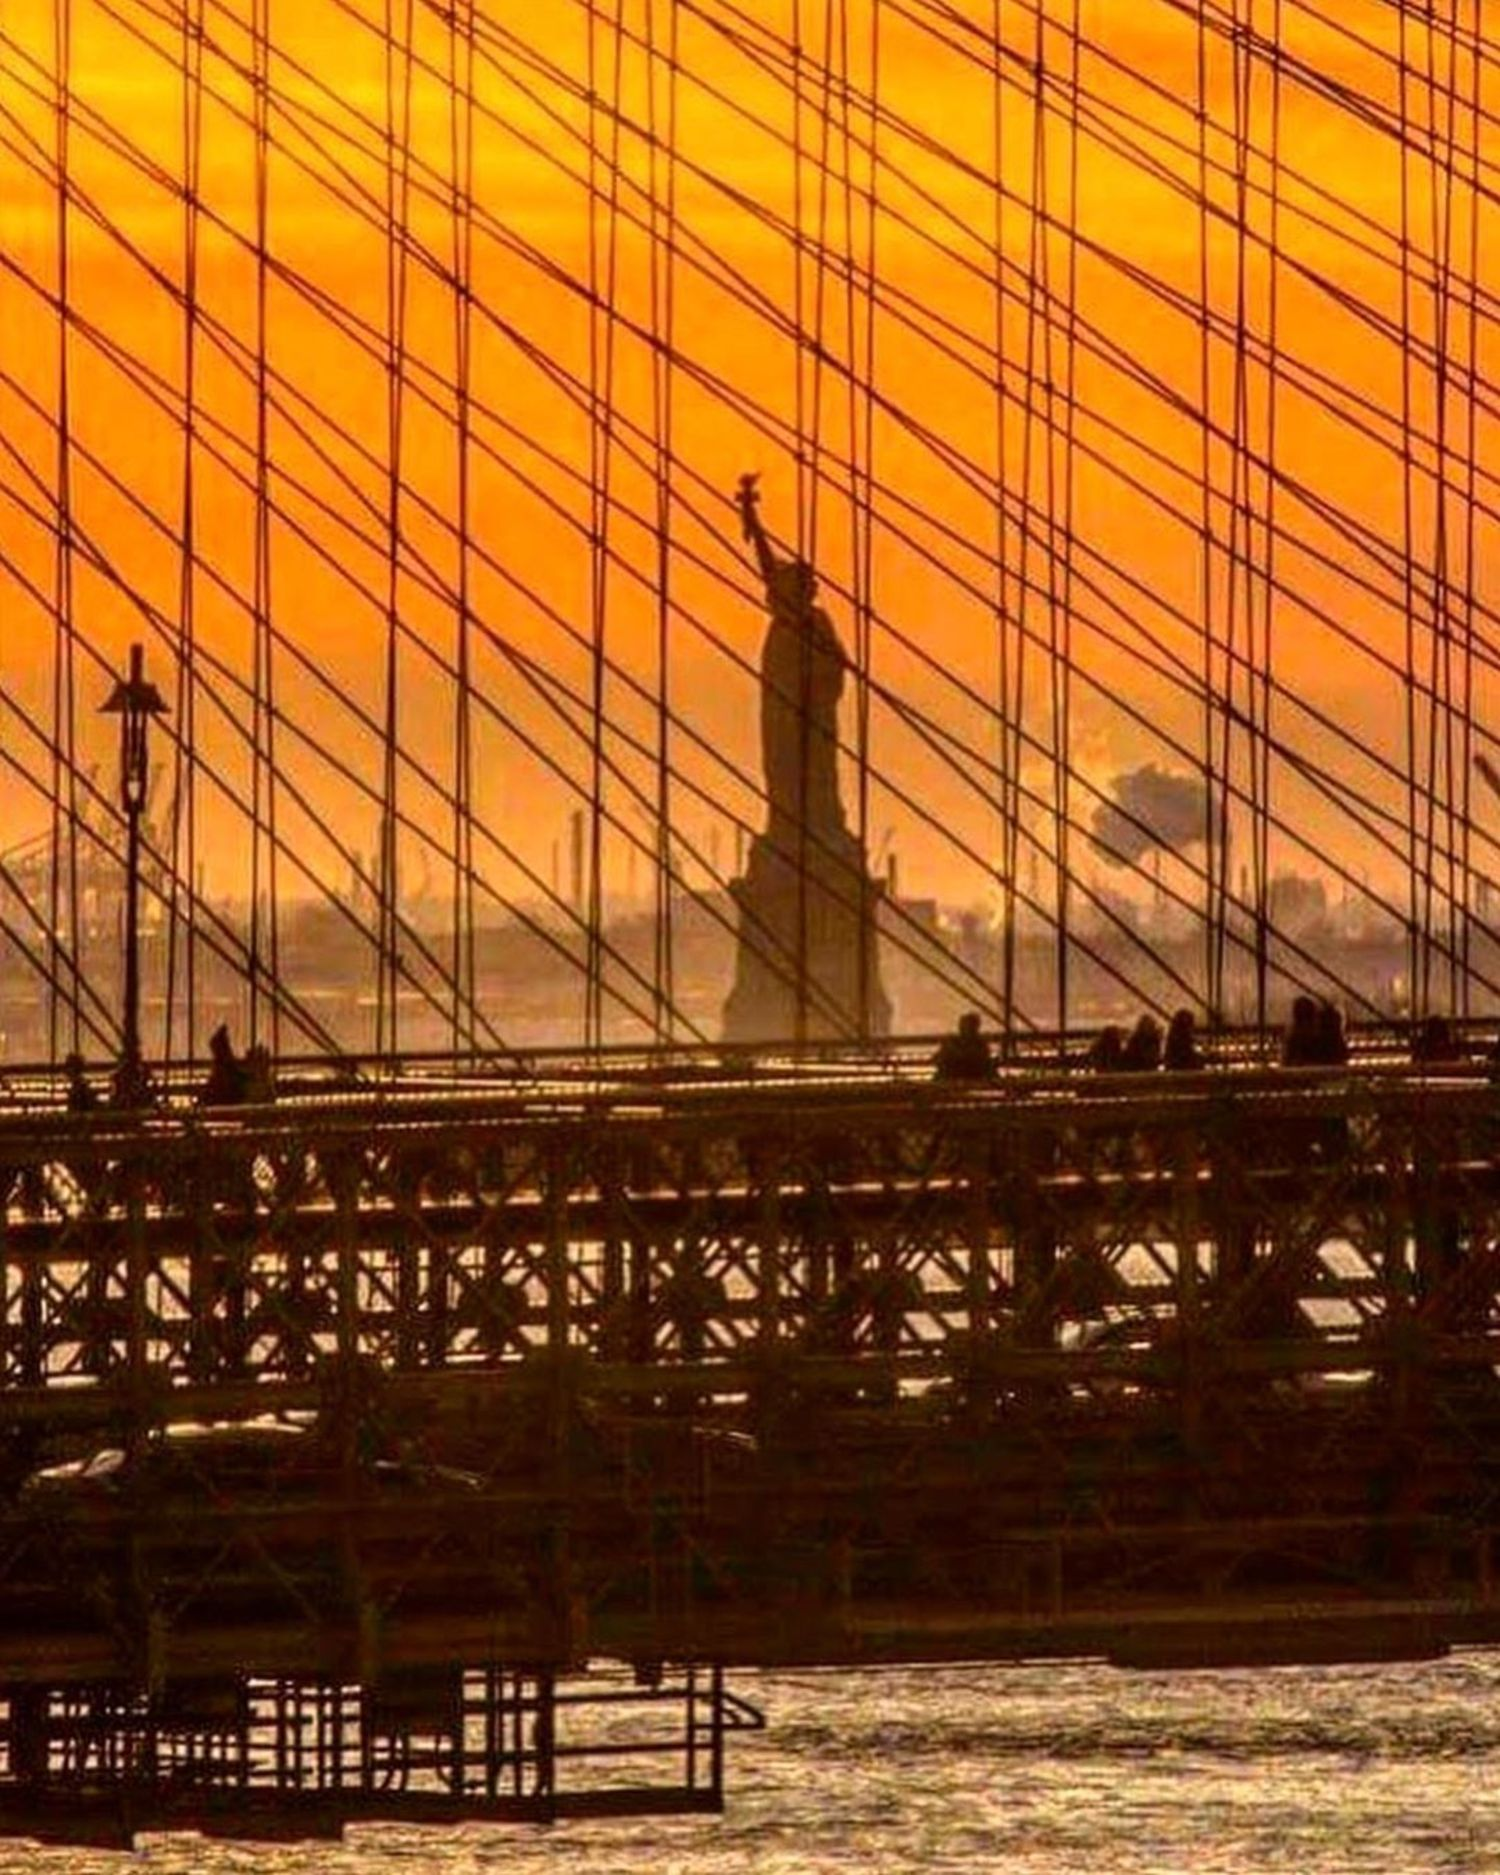 Statue of Liberty through the Brooklyn Bridge, New York